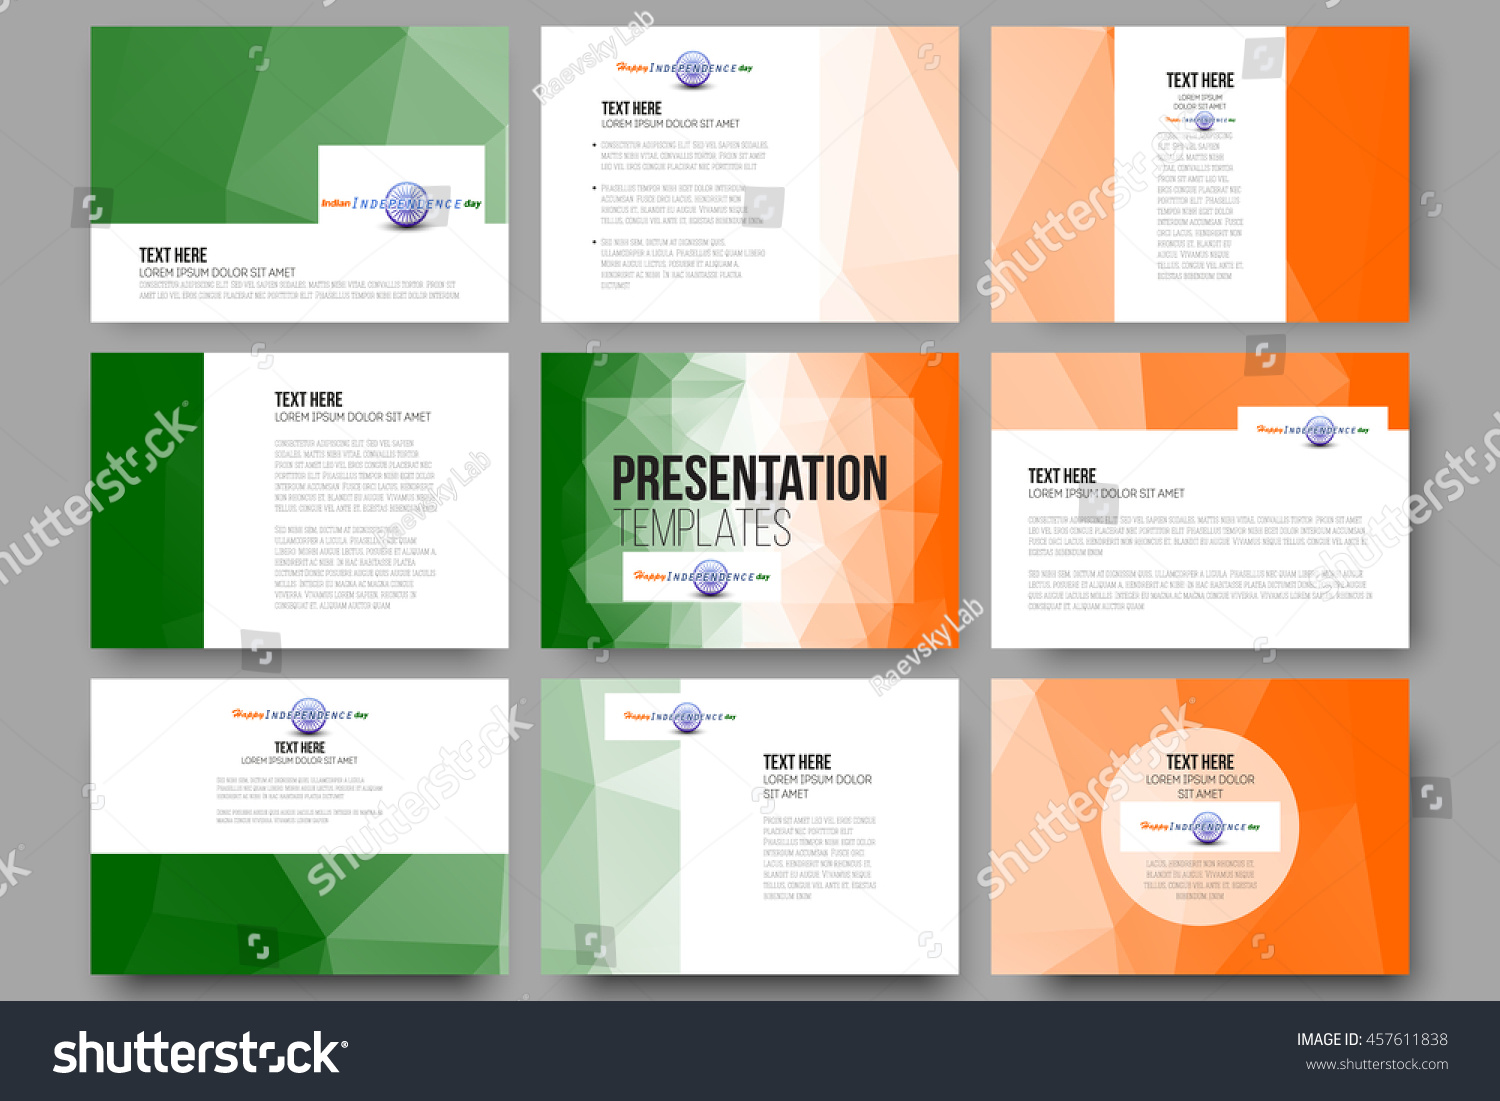 Colors website ashoka - Set Of 9 Vector Templates For Presentation Slides Happy Indian Independence Day Background With Ashoka